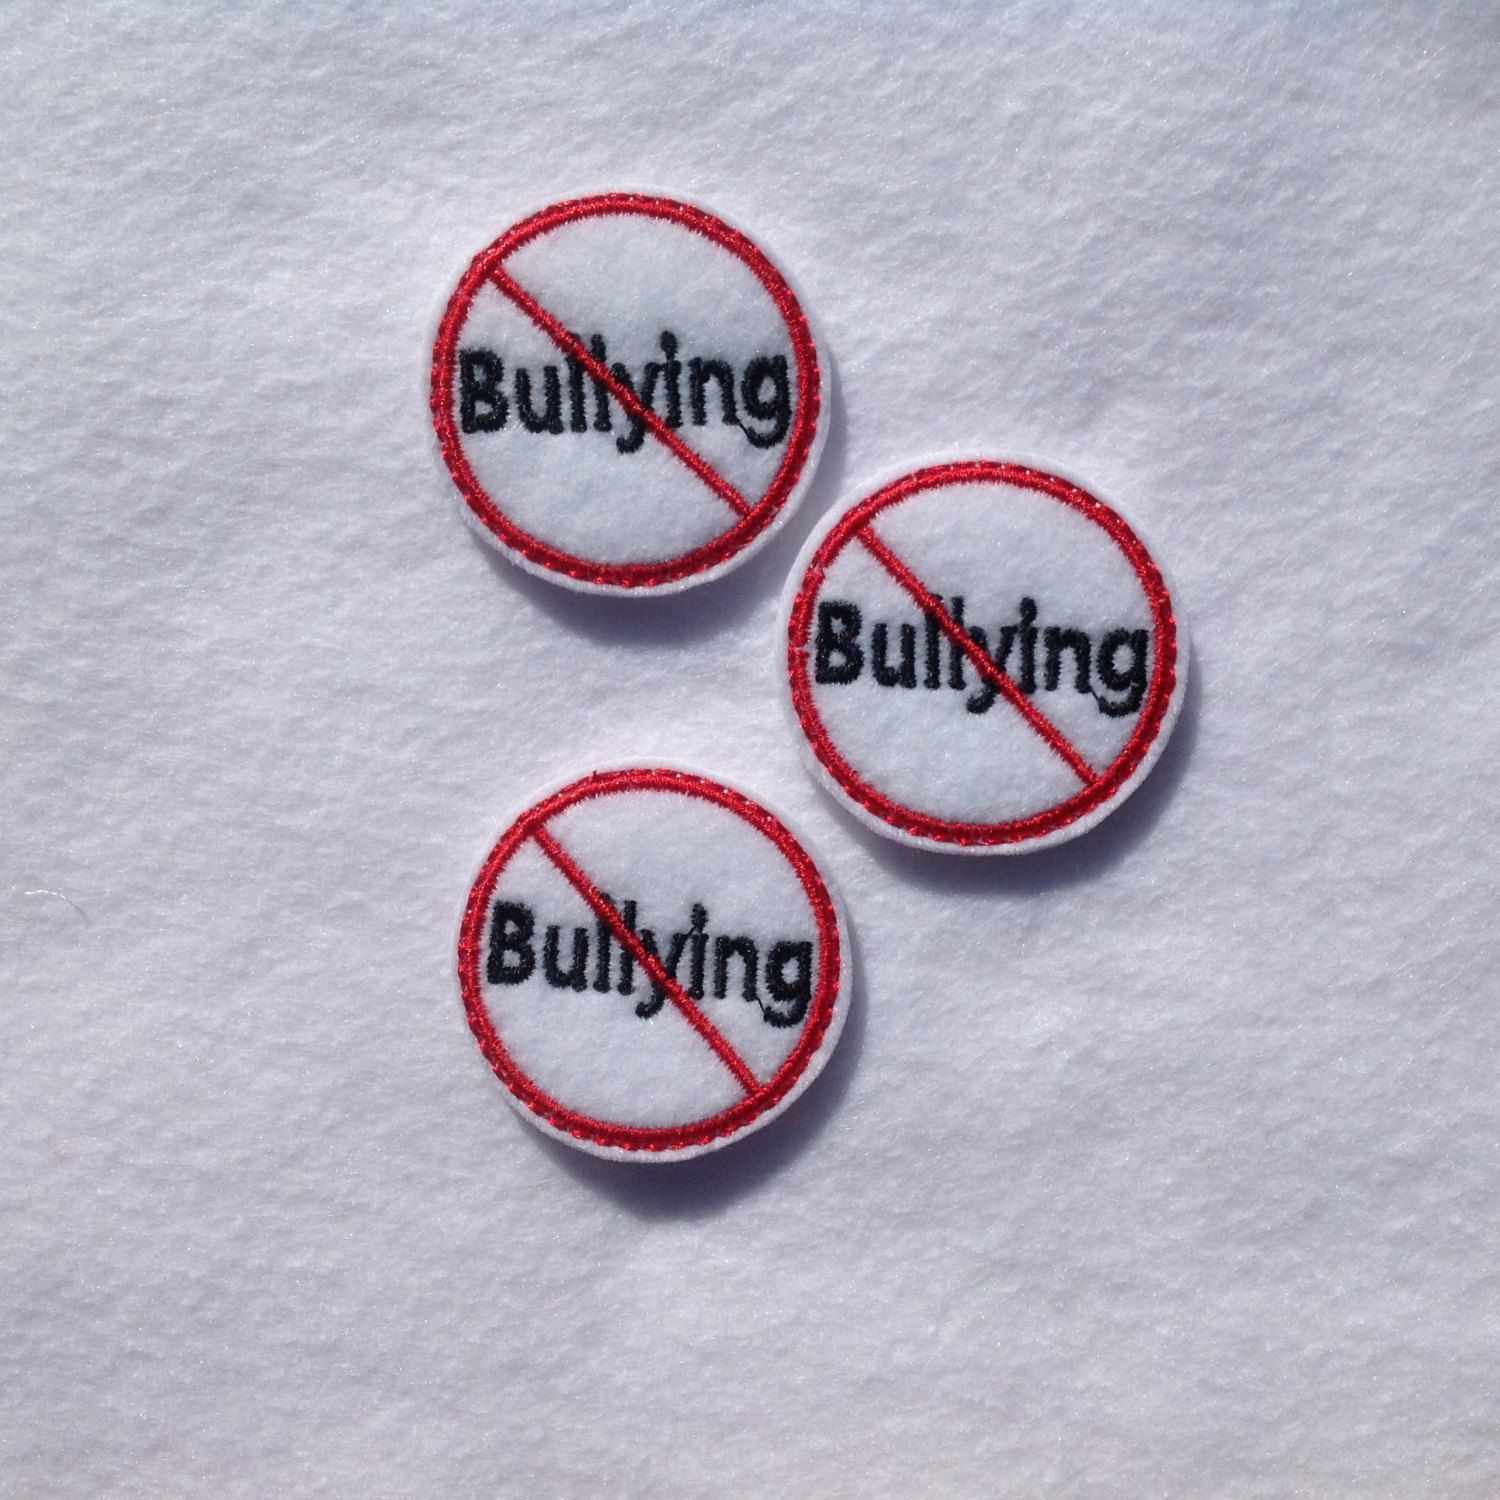 NO BULLYING Felt EMBELLISHMENT ~ Machine Embroidered Felt / Applique ~ Ready To Ship ~ Available Cut Or Uncut by CreationsByKG on Etsy